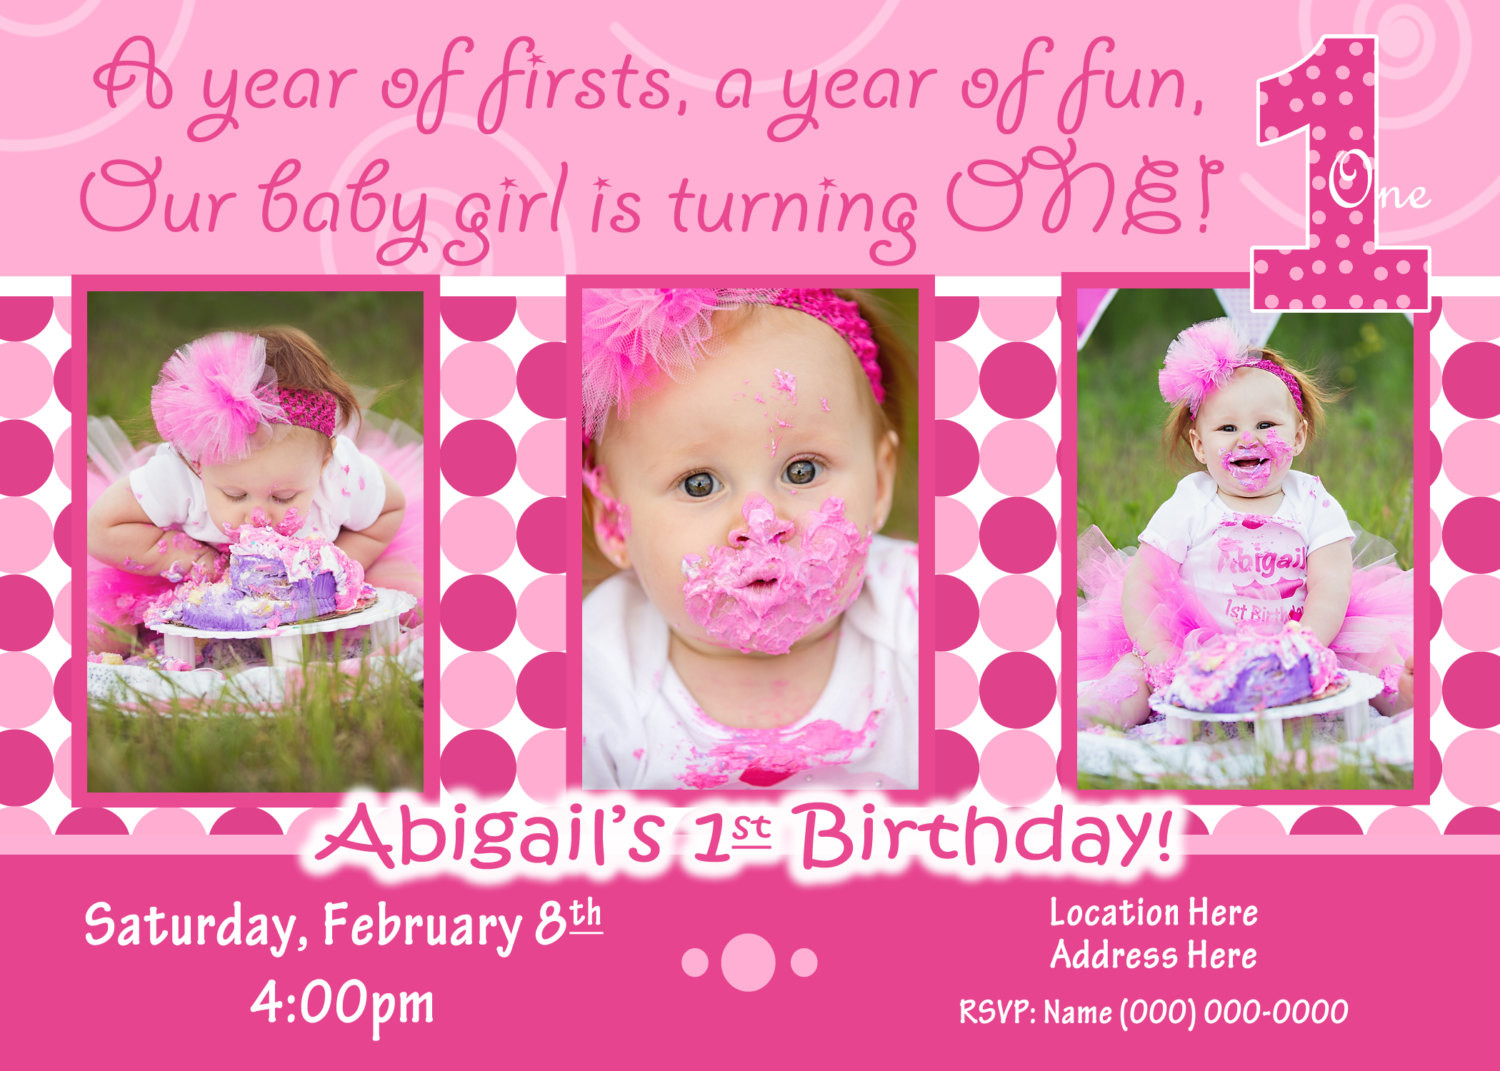 Best ideas about 1st Birthday Girl Invitations . Save or Pin 1st Birthday Girl invitation 1st birthday Girl invite Now.